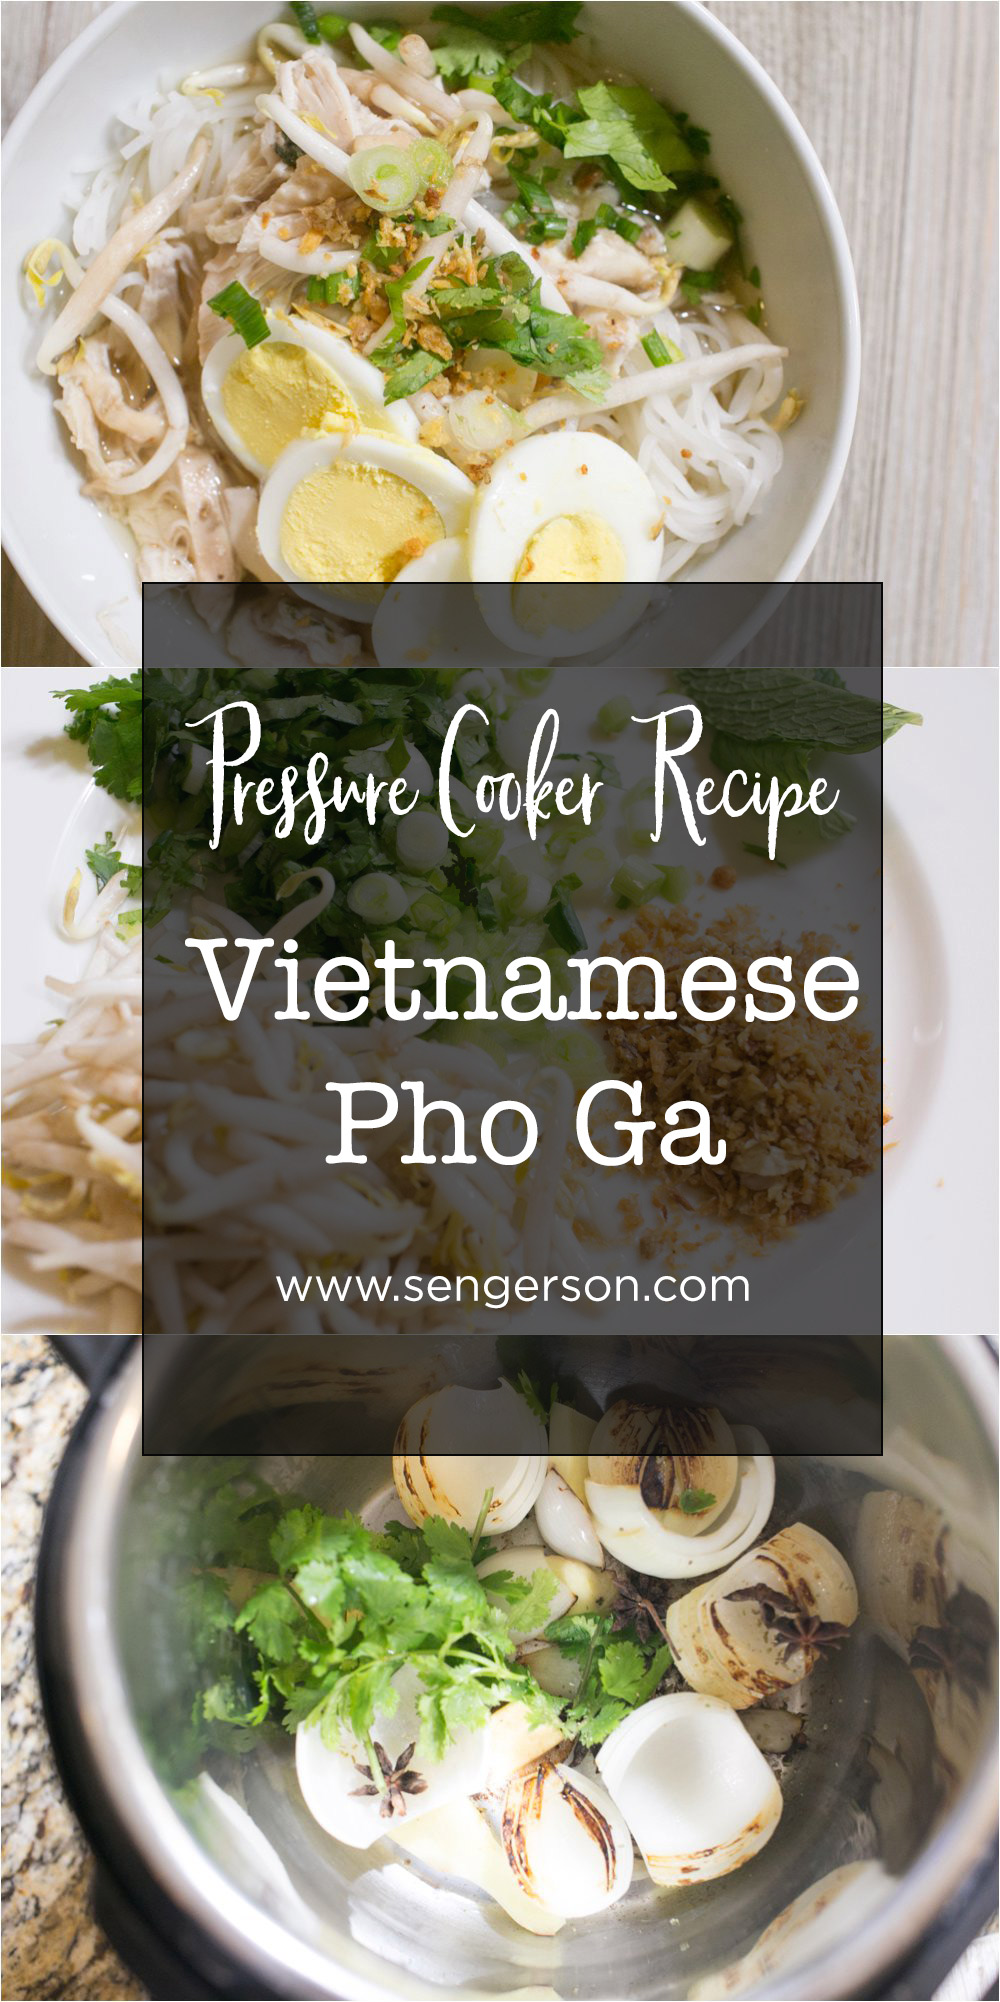 Easy vietnamese pho ga recipe using the pressure cooker.